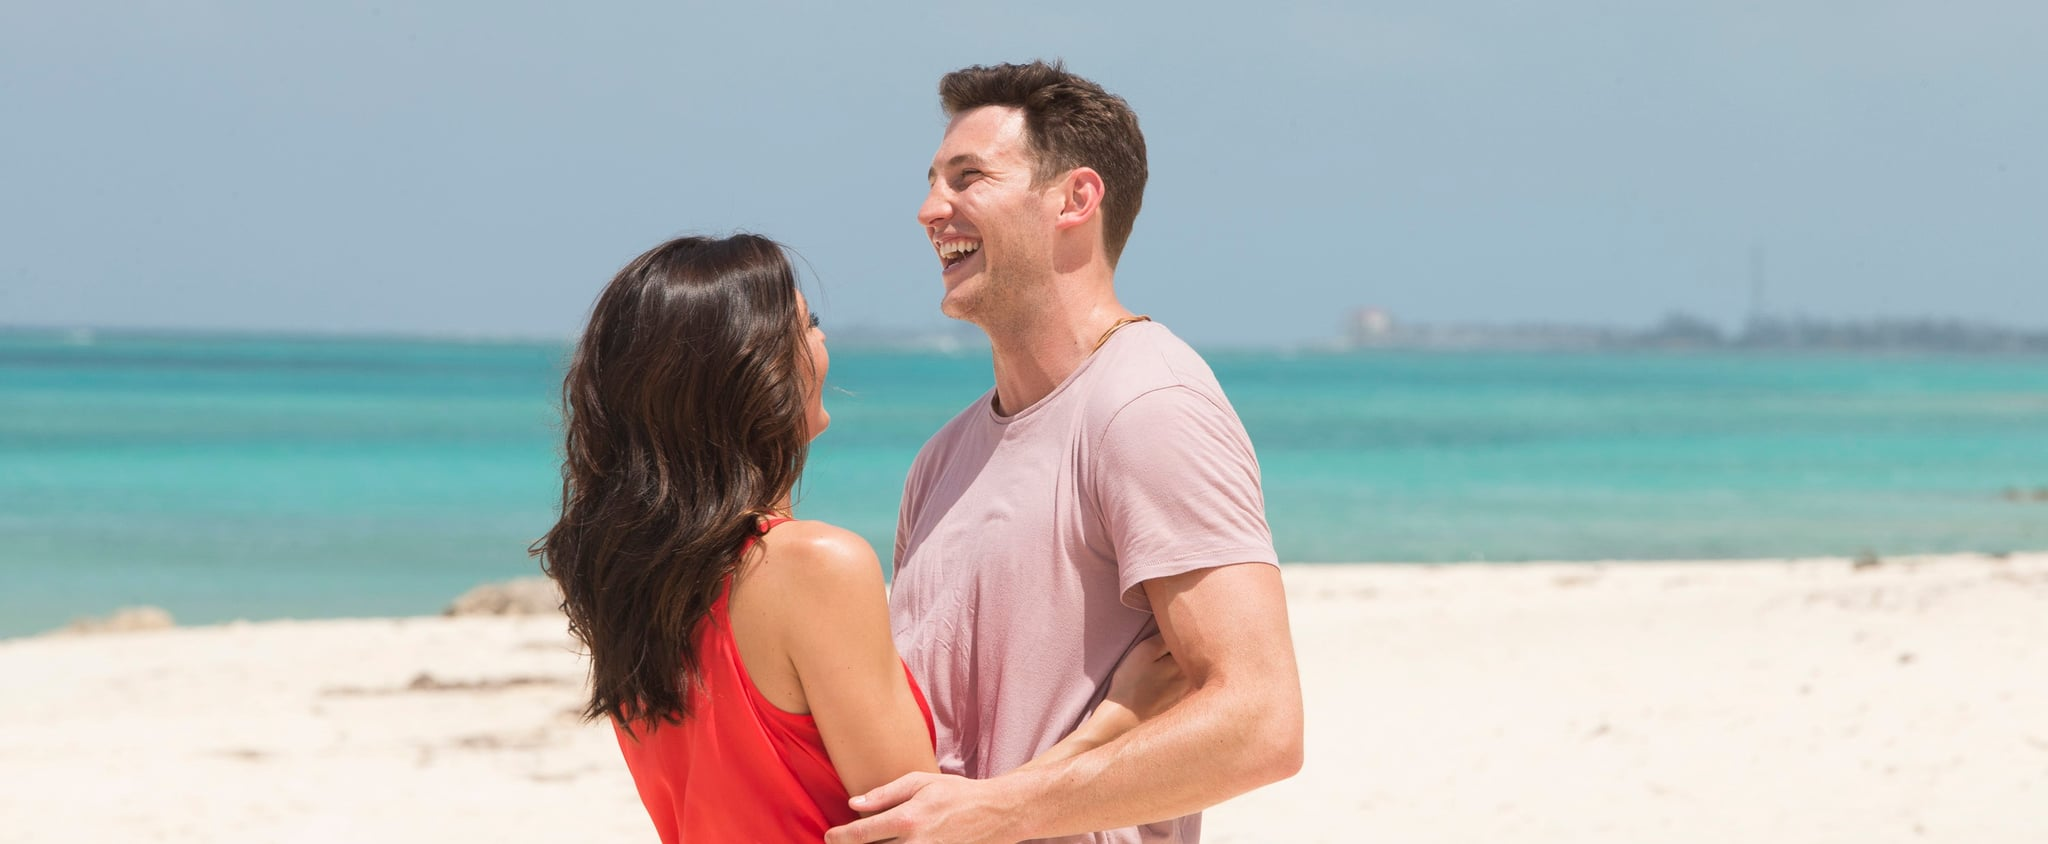 What Happened With Becca and Blake on The Bachelorette?